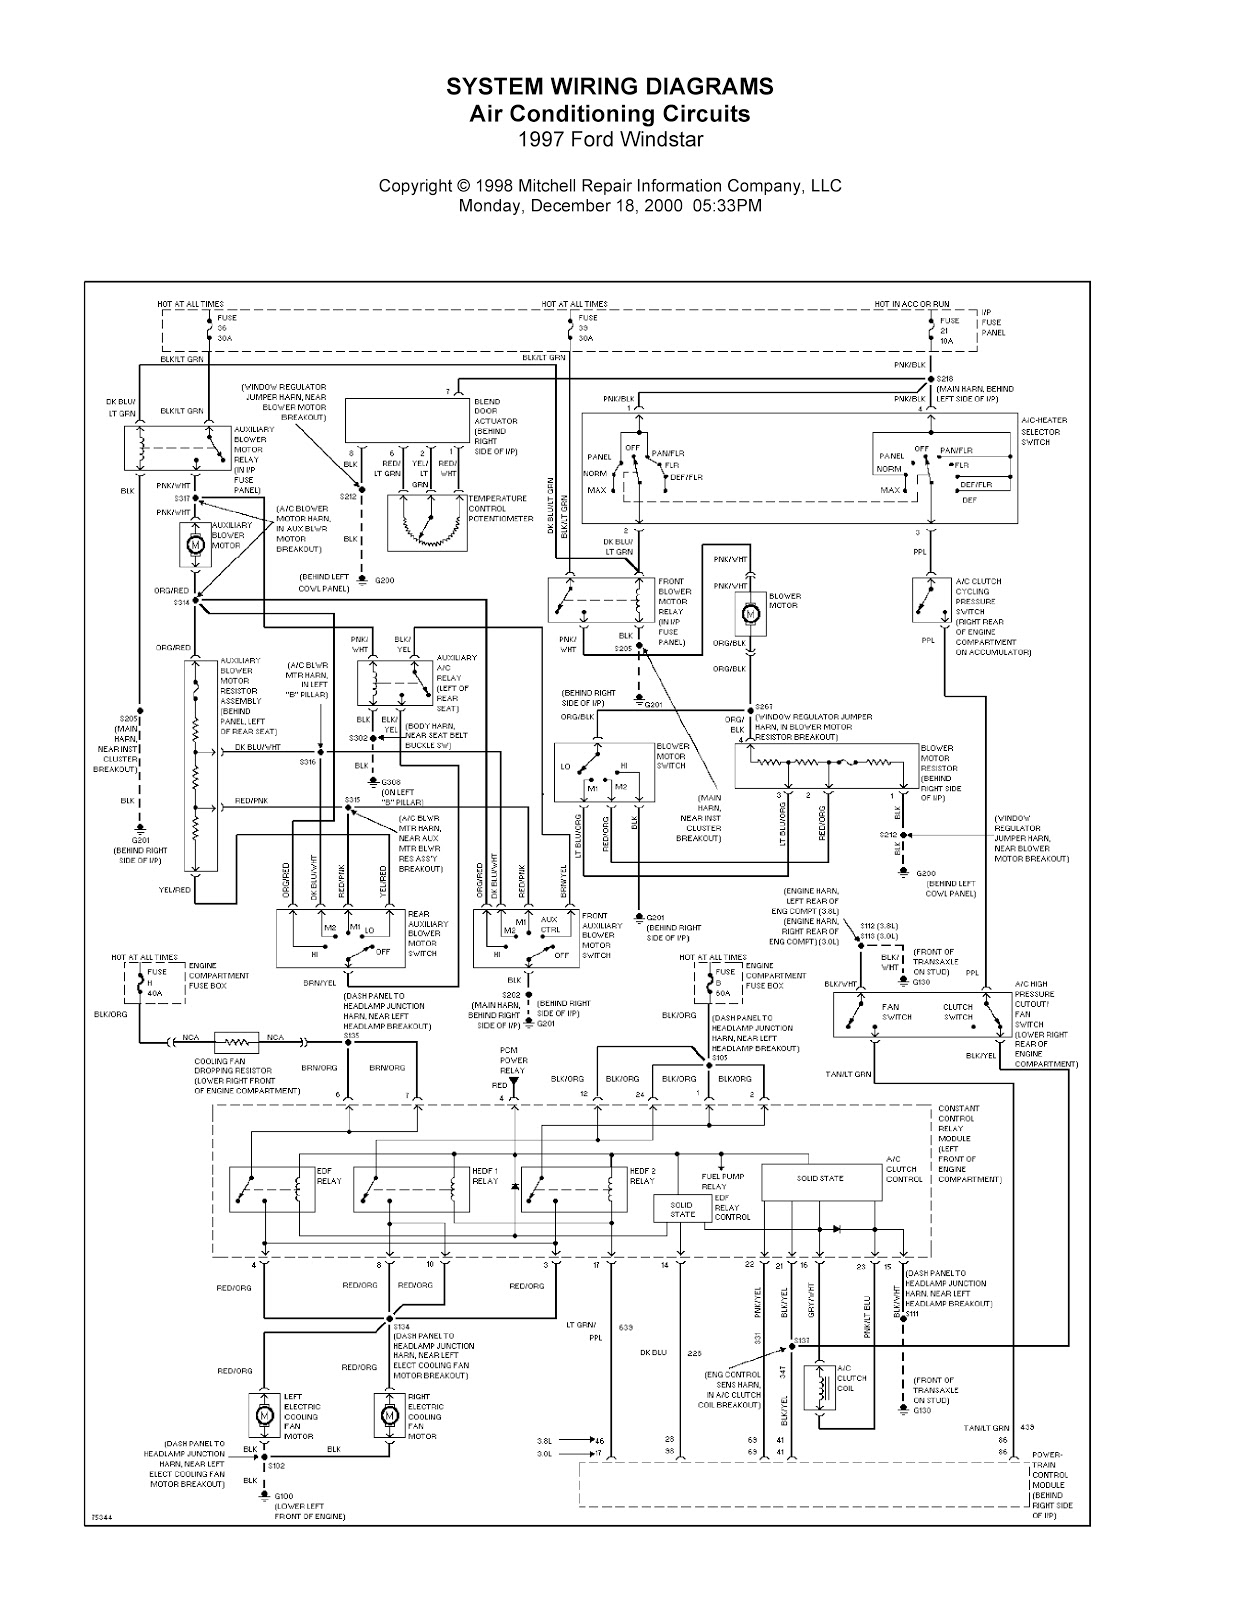 0001 2000 ford windstar wiring diagram ford windstar 3 8 engine diagram  at webbmarketing.co